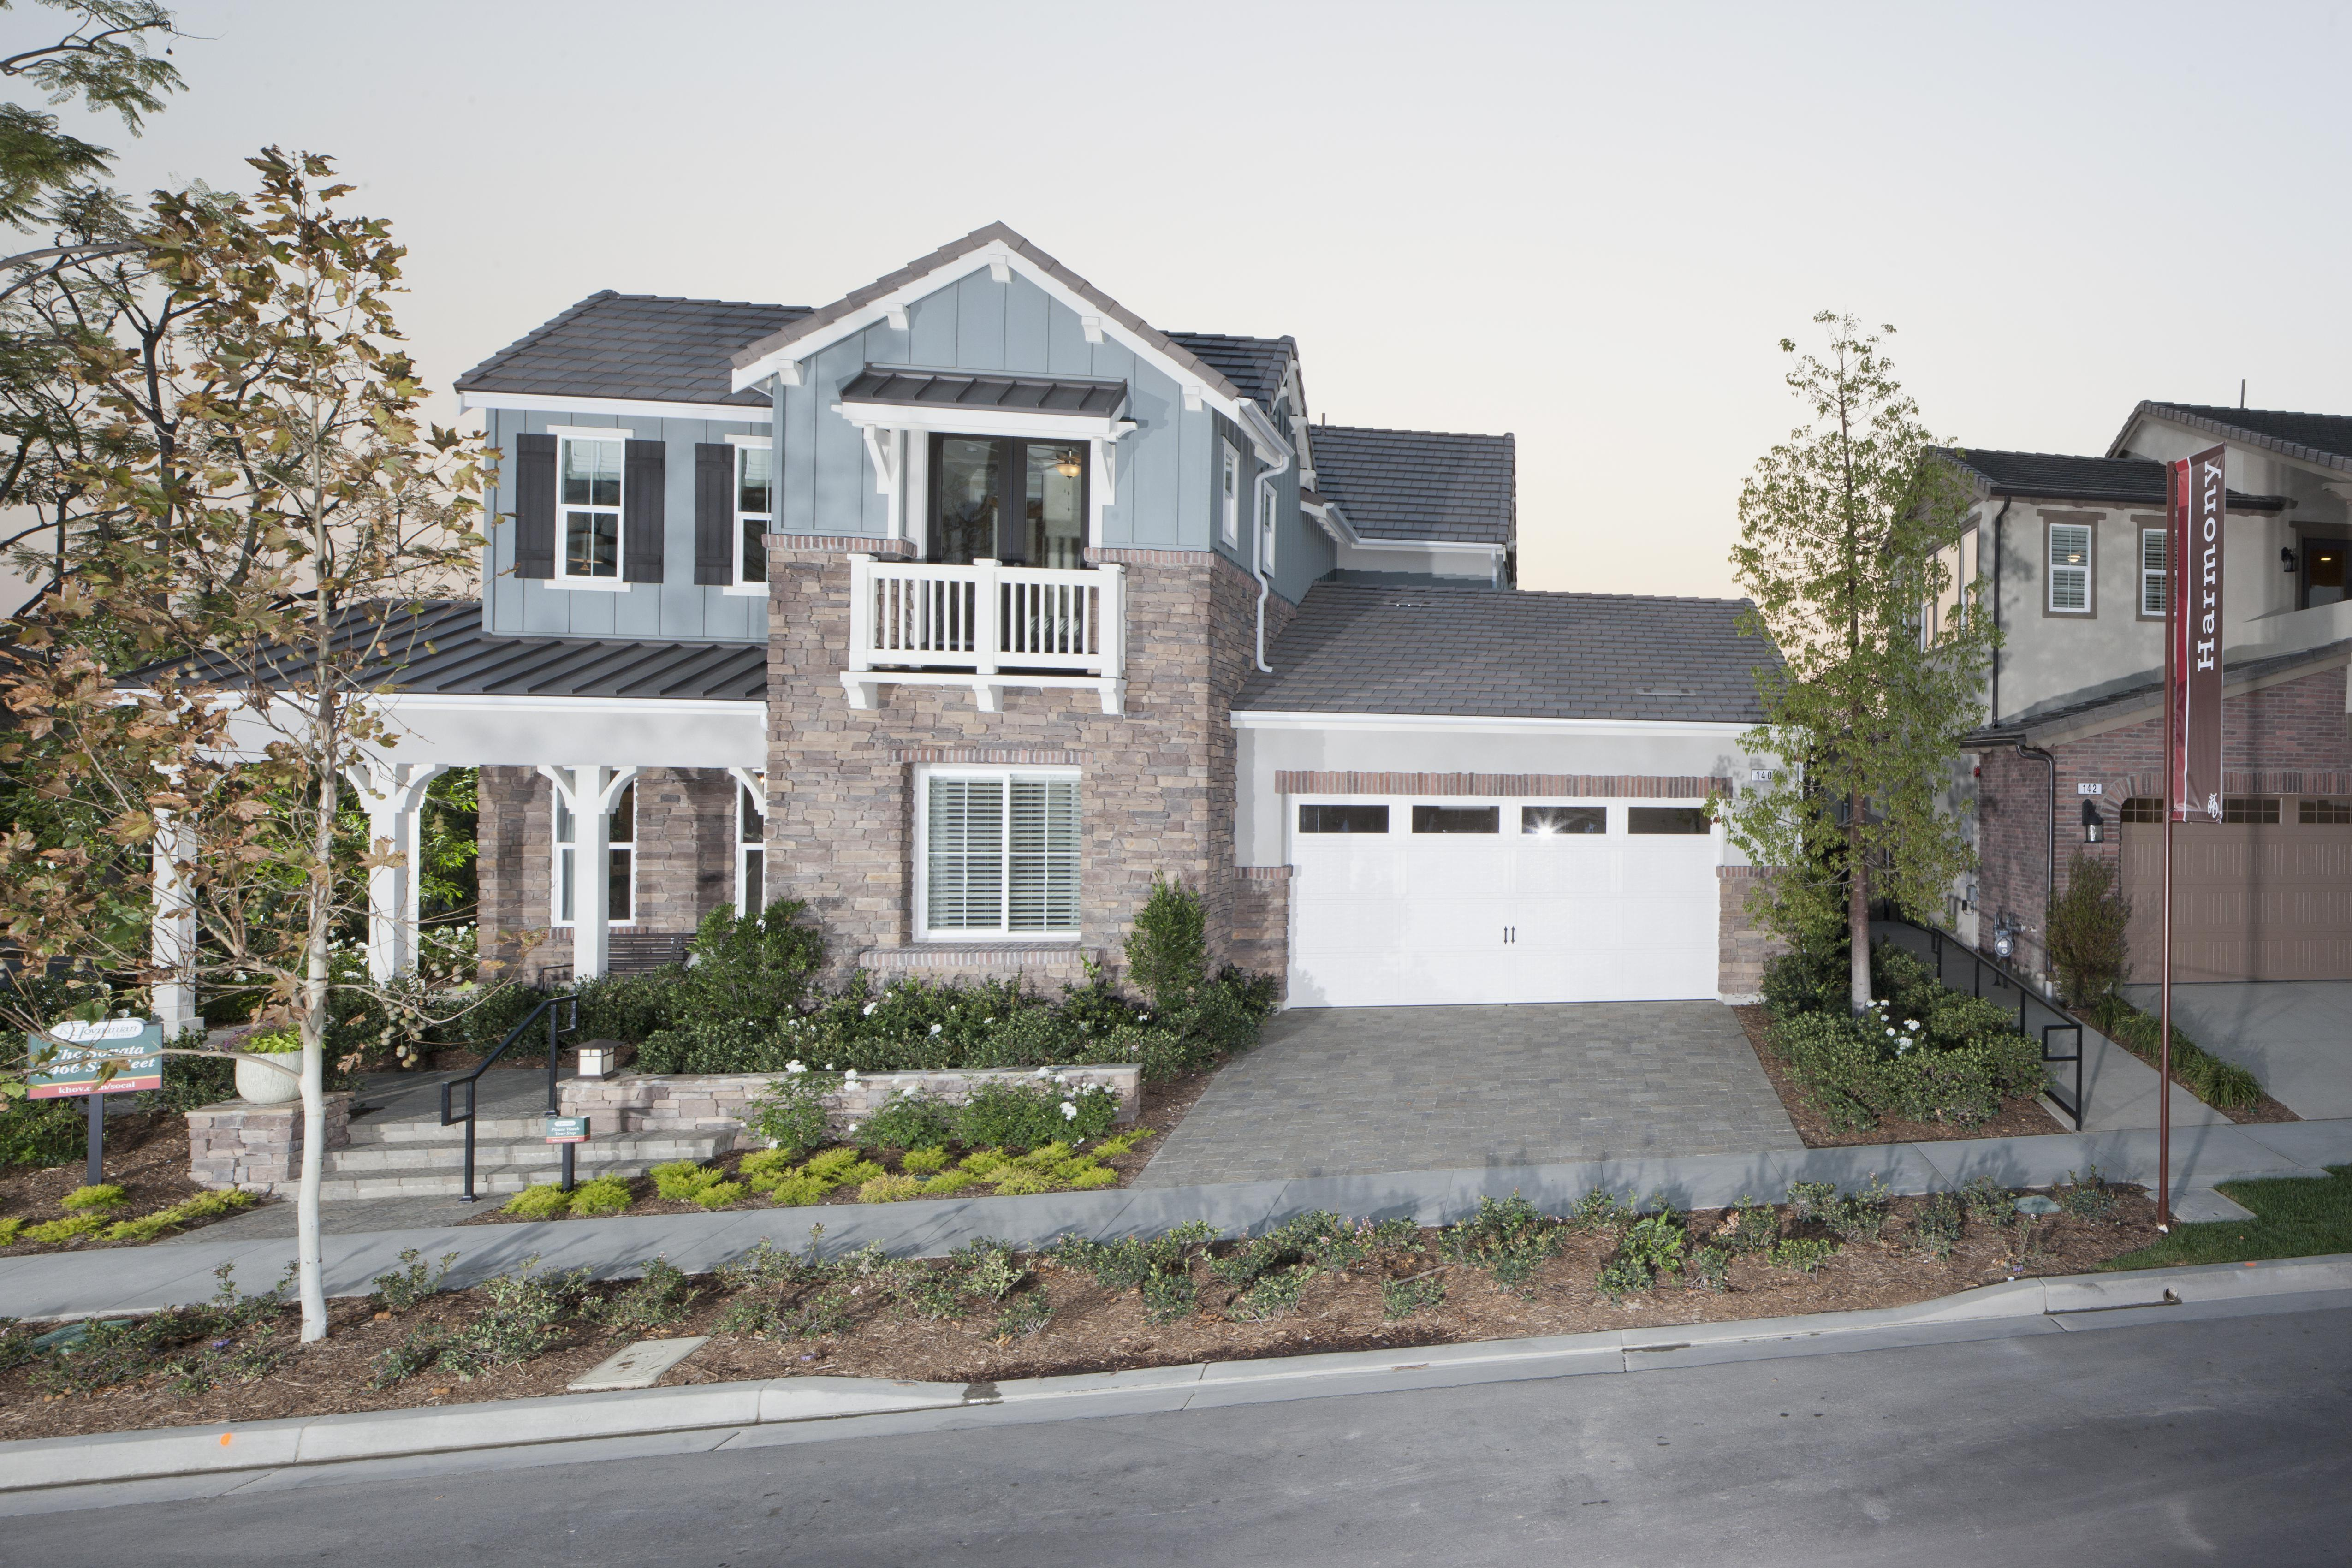 Exterior of two story house with driveway